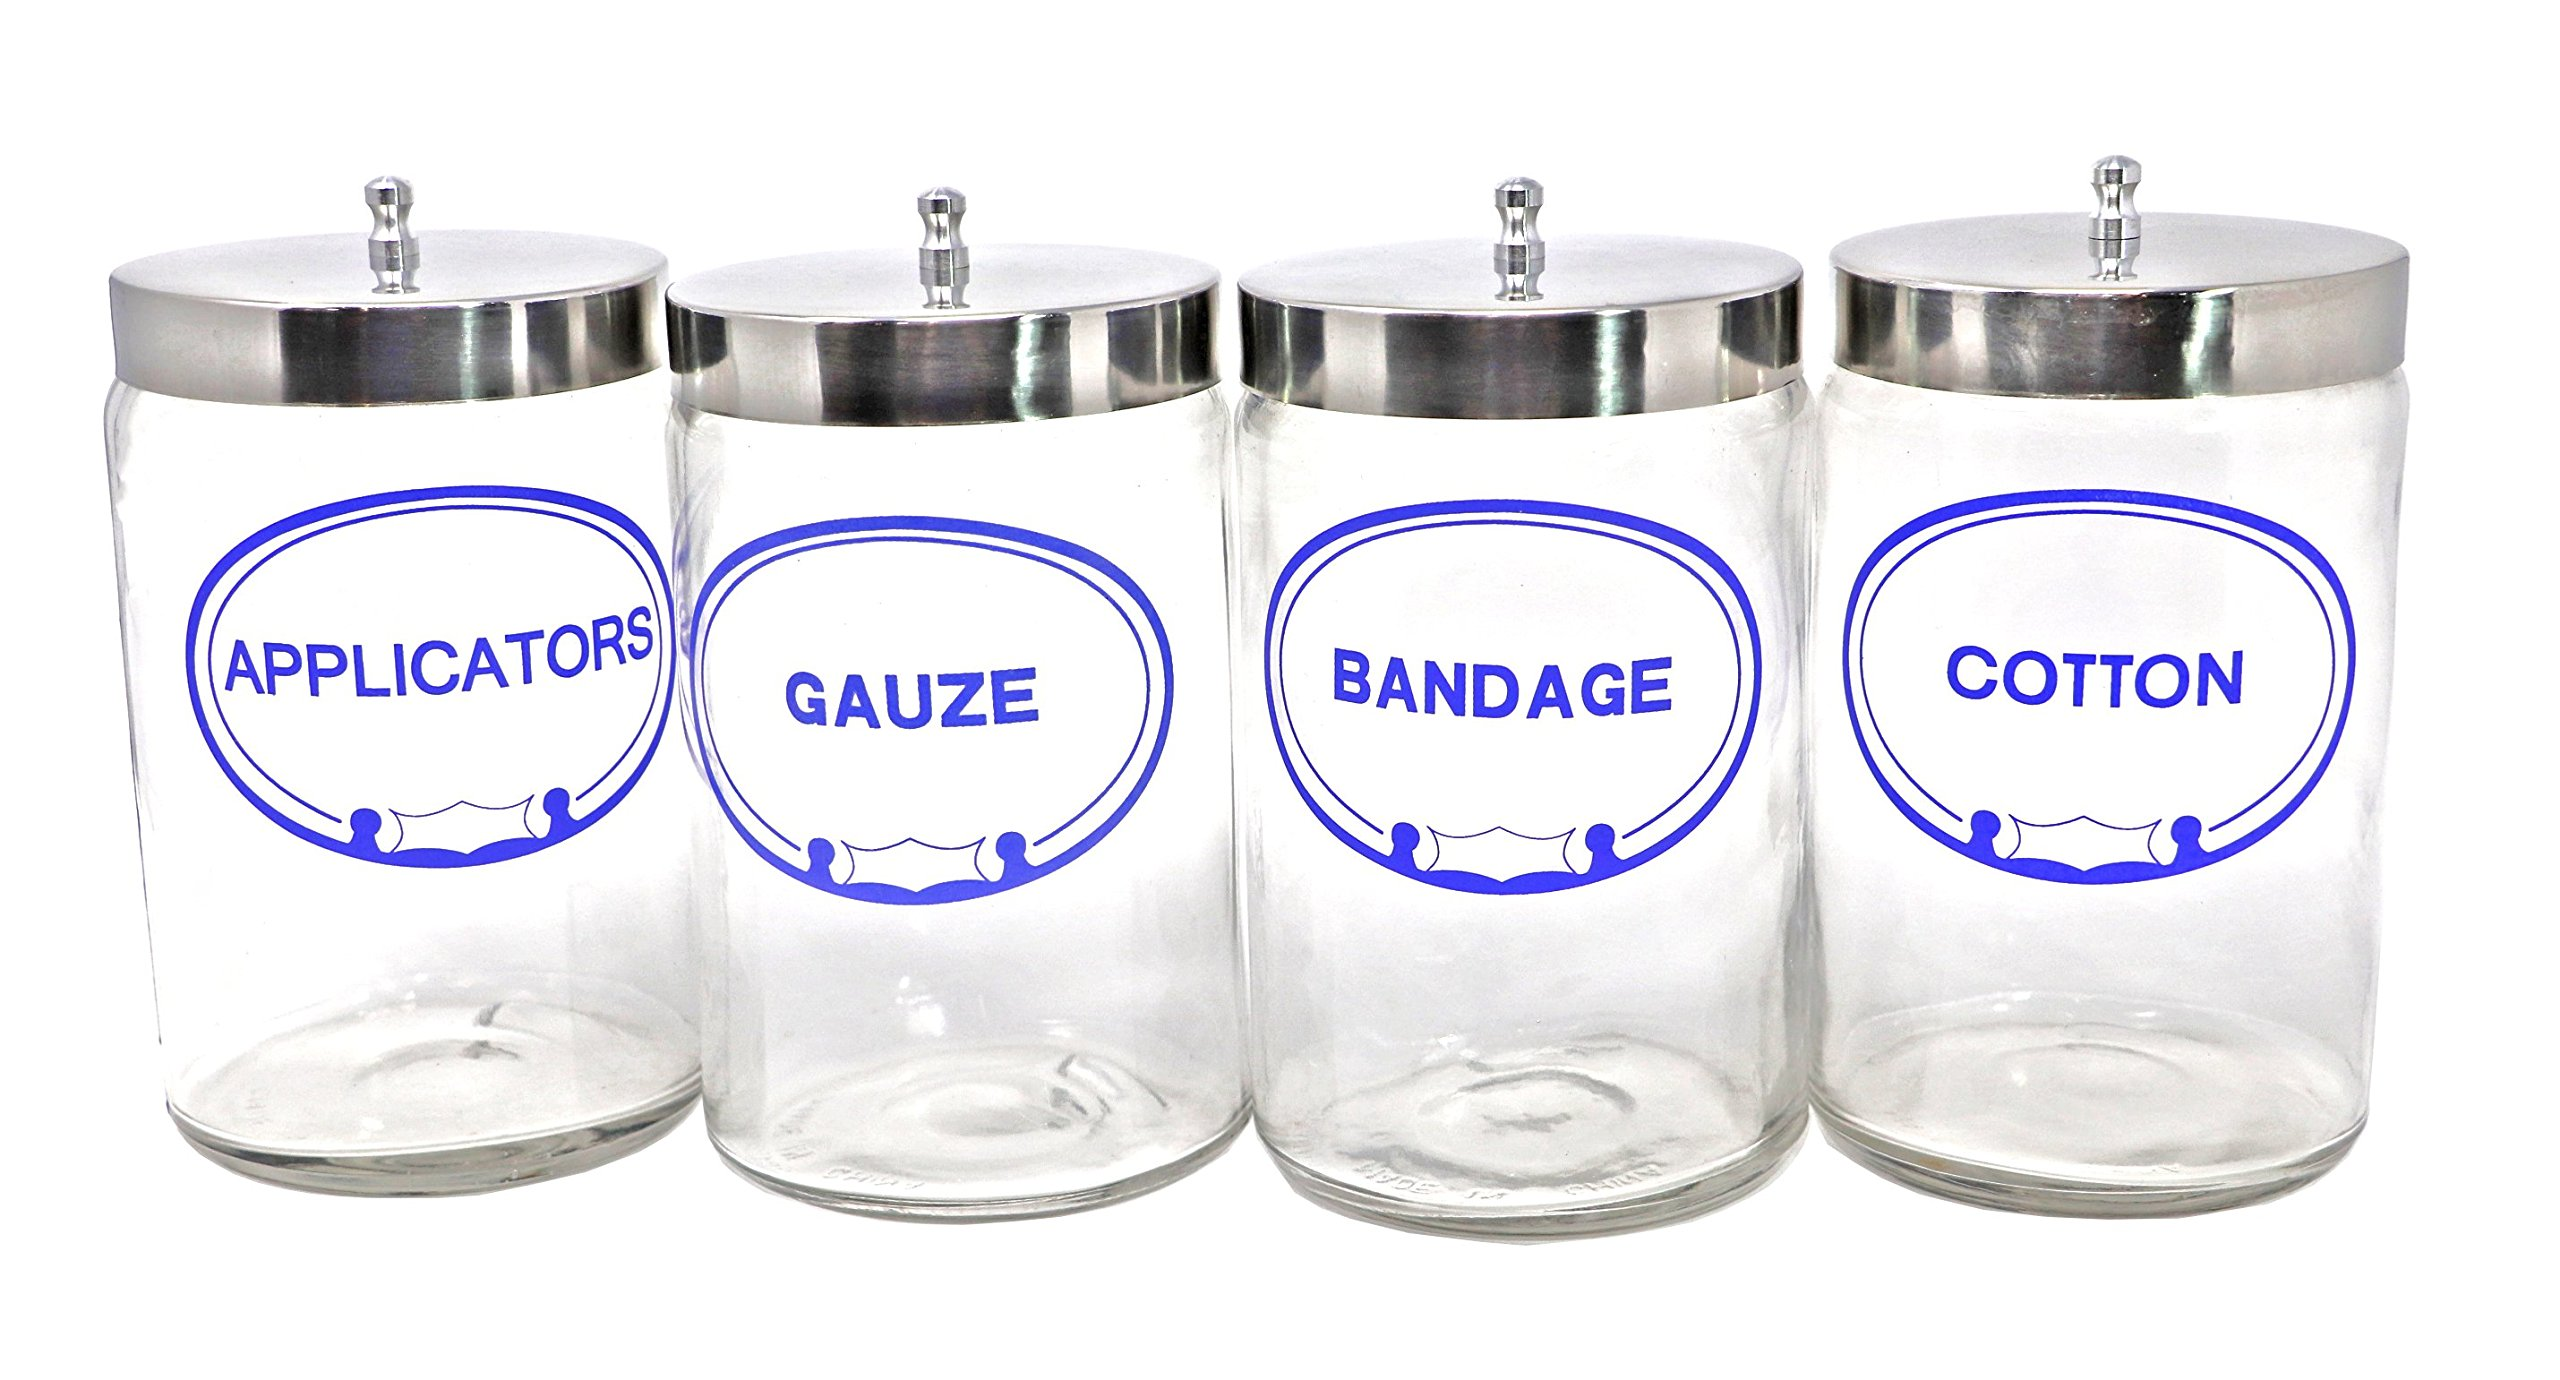 Pivit Imprinted Flint Glass Apothecary Sundry Jars With Lids   7''H X 4.25''D Clear   Set of 4   Bandages, Applicators, Gauze, Cotton Labeled   Polished Aluminum Tops   Storage For Medical and Supplies